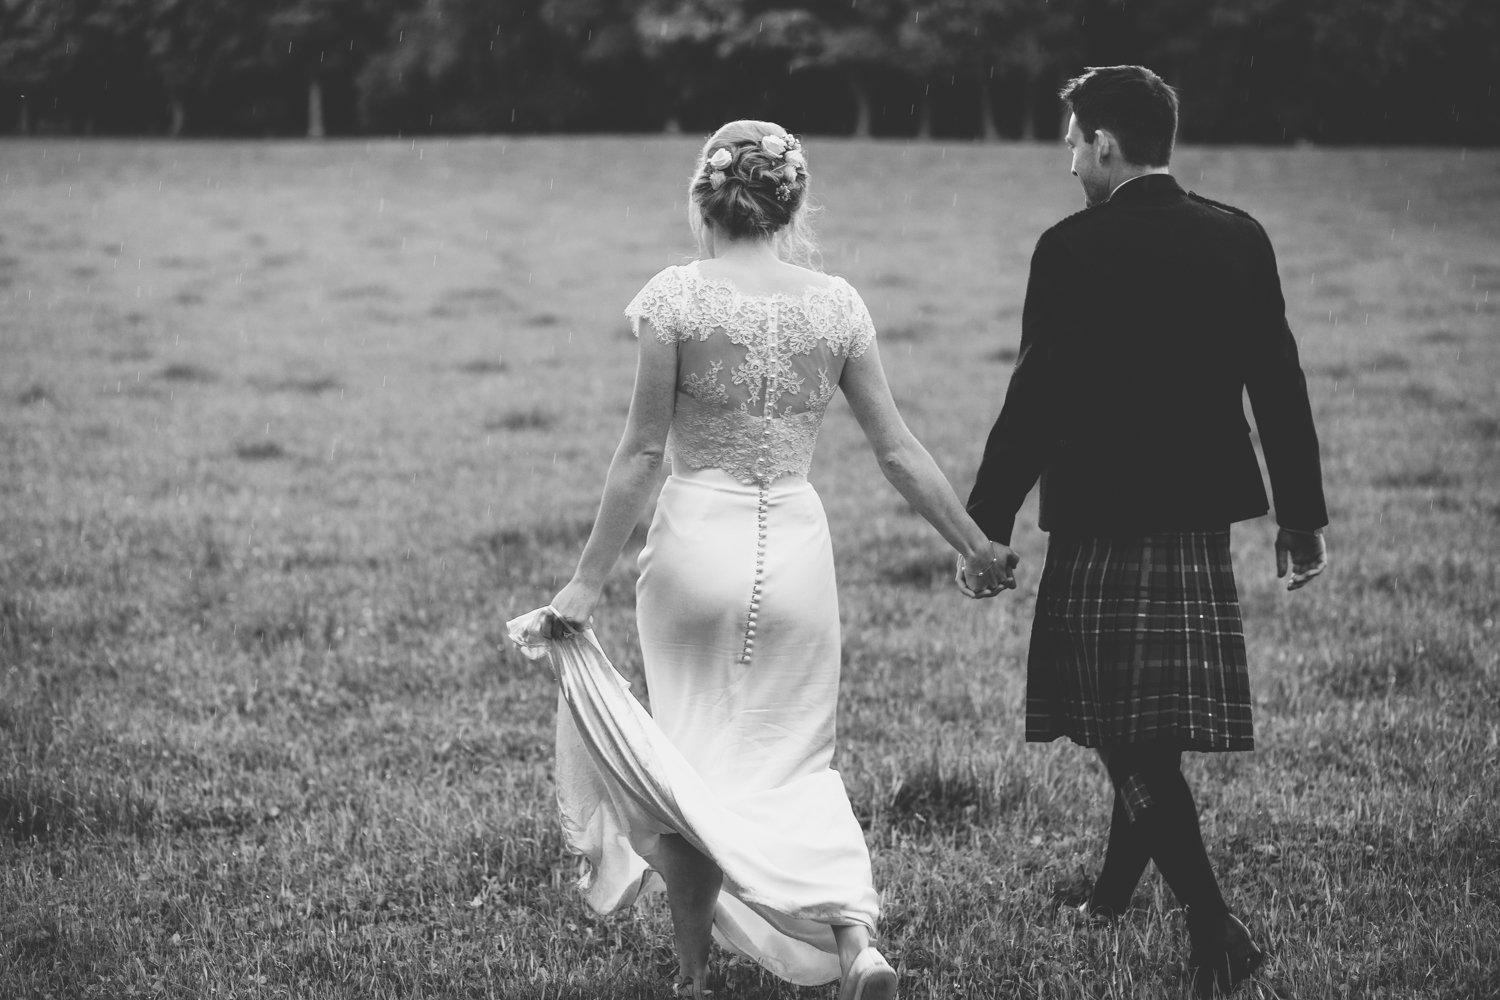 wedding photographer aswanley, aswanley weddings, weddings at aswanley, aberdeen wedding photographer, alternative wedding photographer Scotland, alternative wedding photography Scotland, alternative wedding photographer aberdeen